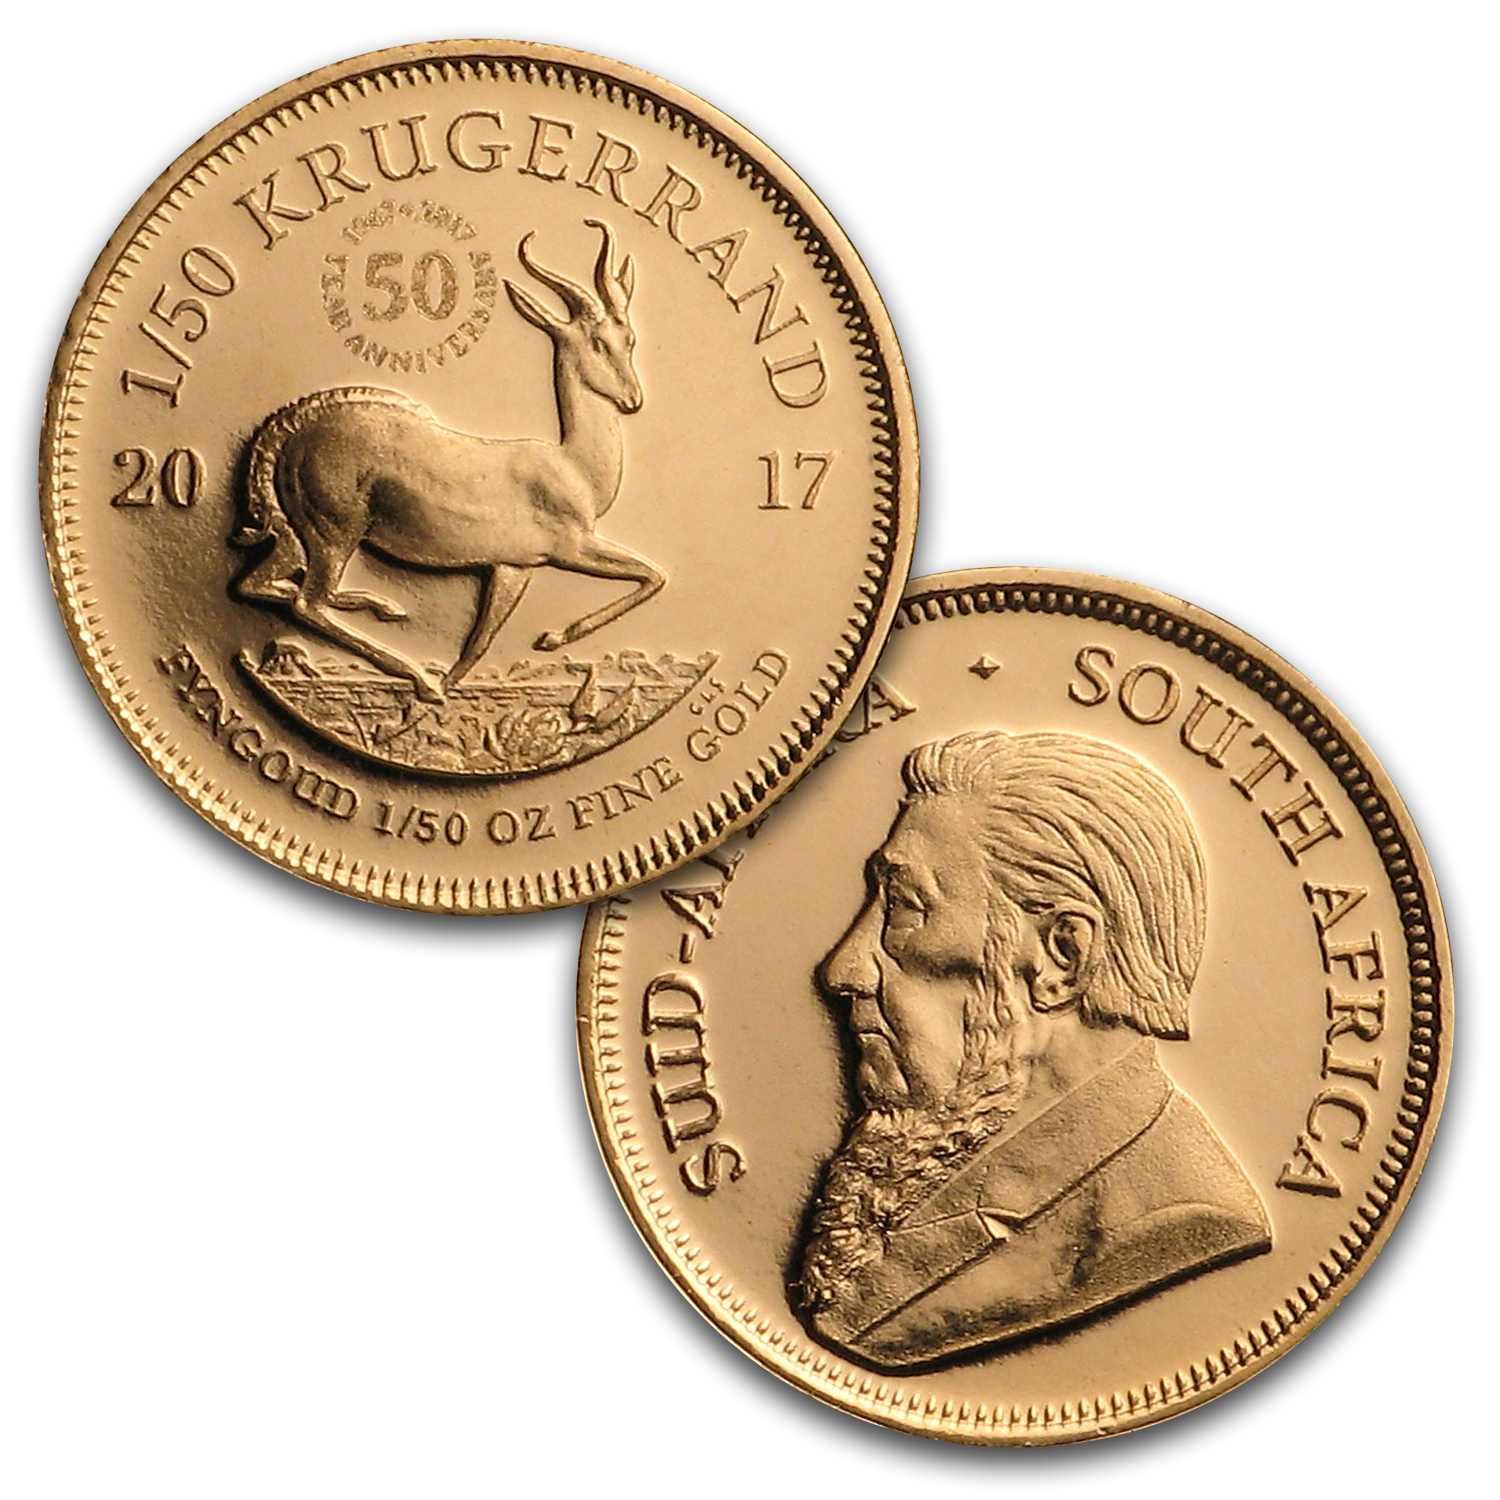 2017 South Africa 6-Coin Krugerrand 50th Anniversary Proof Set